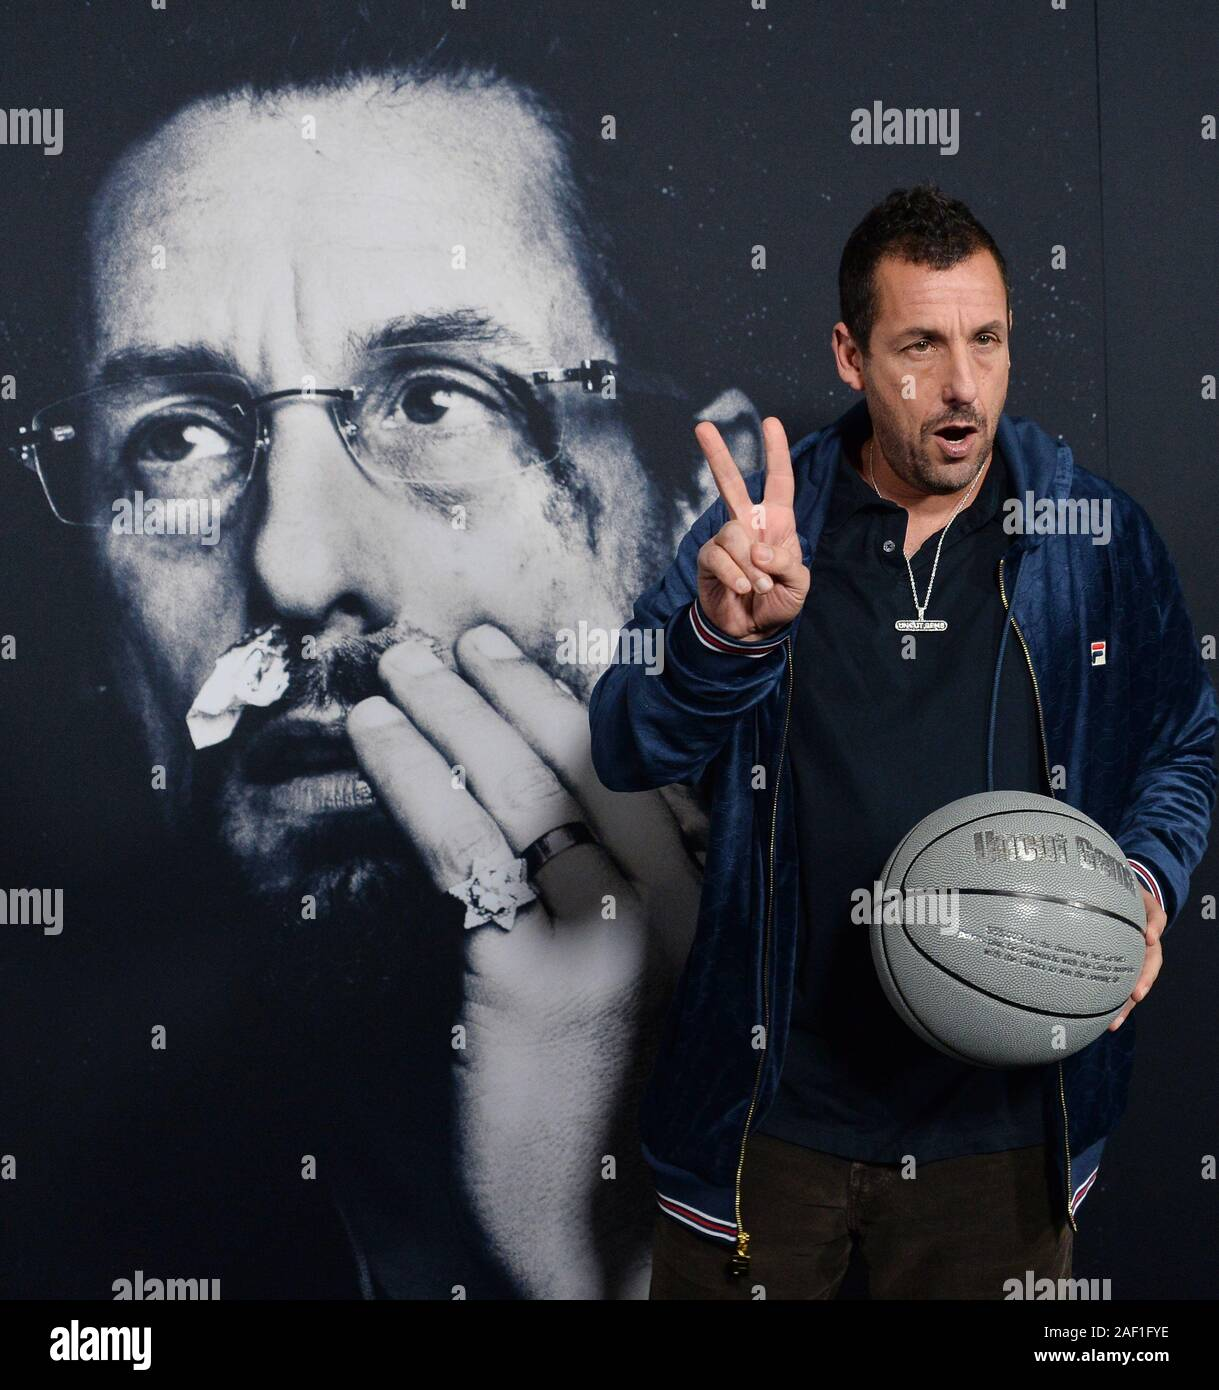 """Hollywood, California, USA. 12th Dec, 2019. Hollywood, California, USA. 11th Dec, 2019. Cast member Adam Sandler attends the premiere of the motion picture crime thriller """"Uncut Gems"""" at the ArcLight Cinema Dome in the Hollywood section of Los Angeles on Wednesday, December 11, 2019. Storyline: Howard Ratner (Adam Sandler), a charismatic New York City jeweler always on the lookout for the next big score. Credit: UPI/Alamy Live News Stock Photo"""